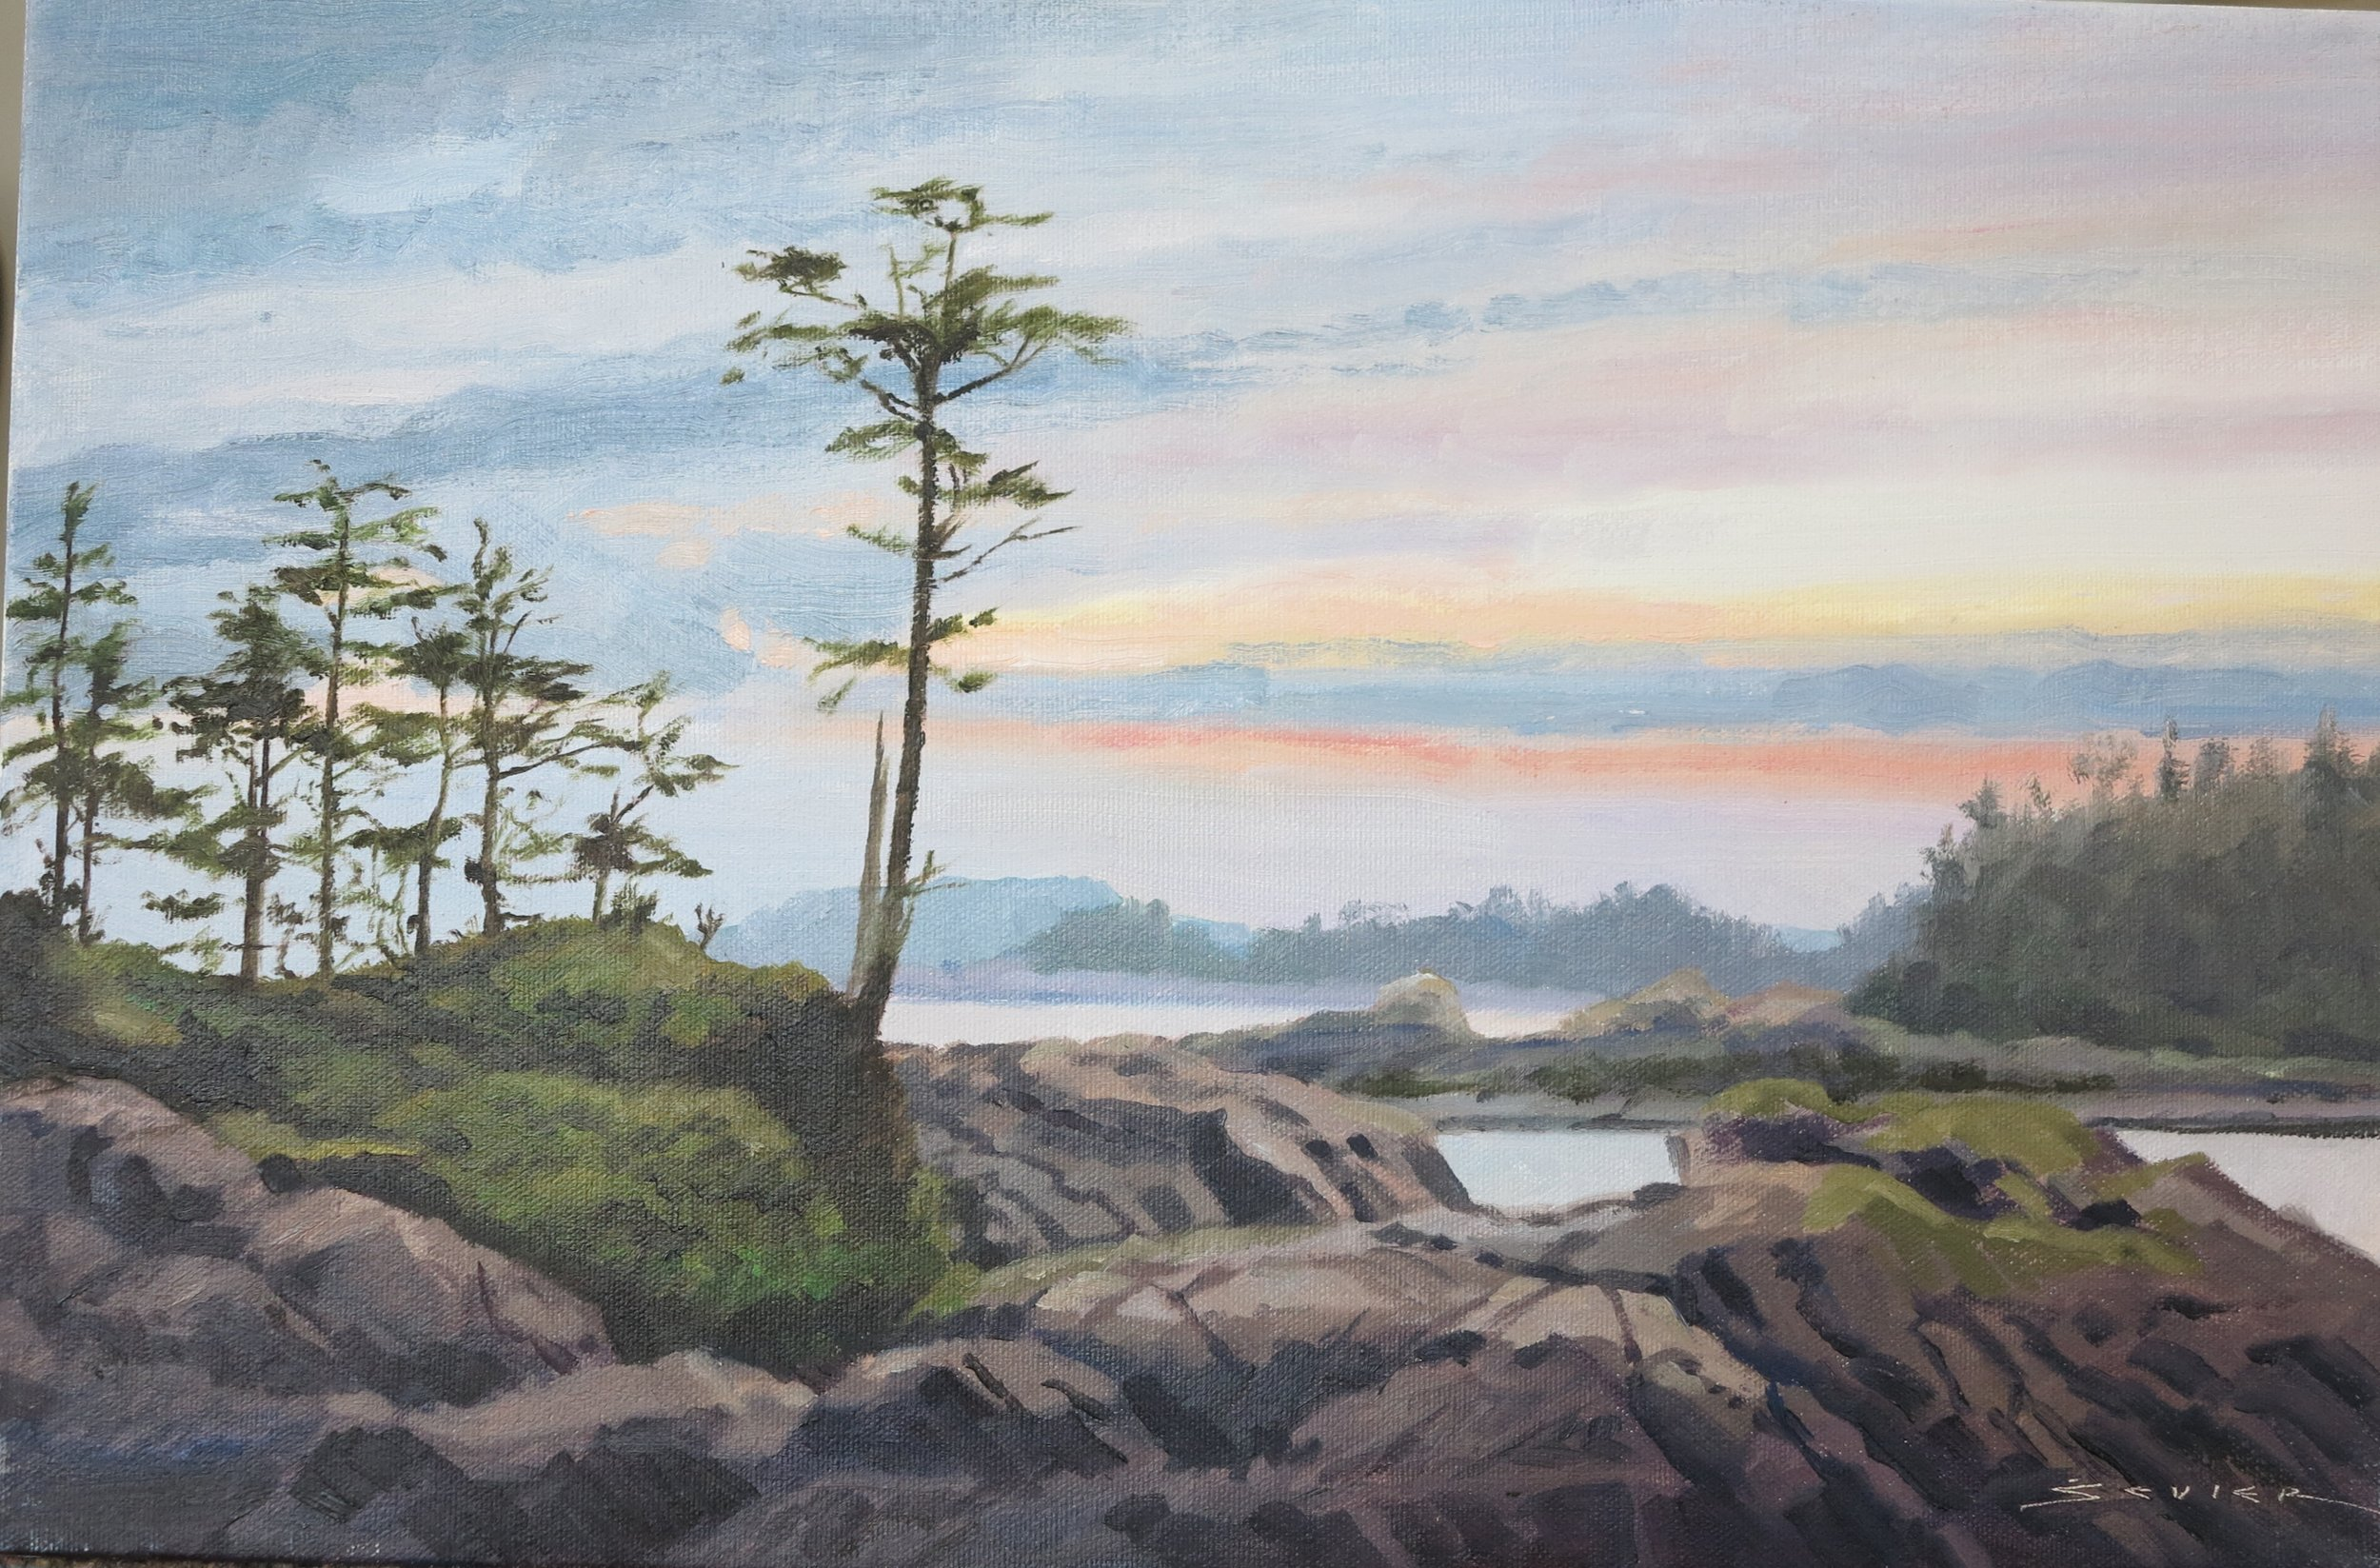 Wild Pacific Trail/Uculet Vancouver Is., 12 x 18,